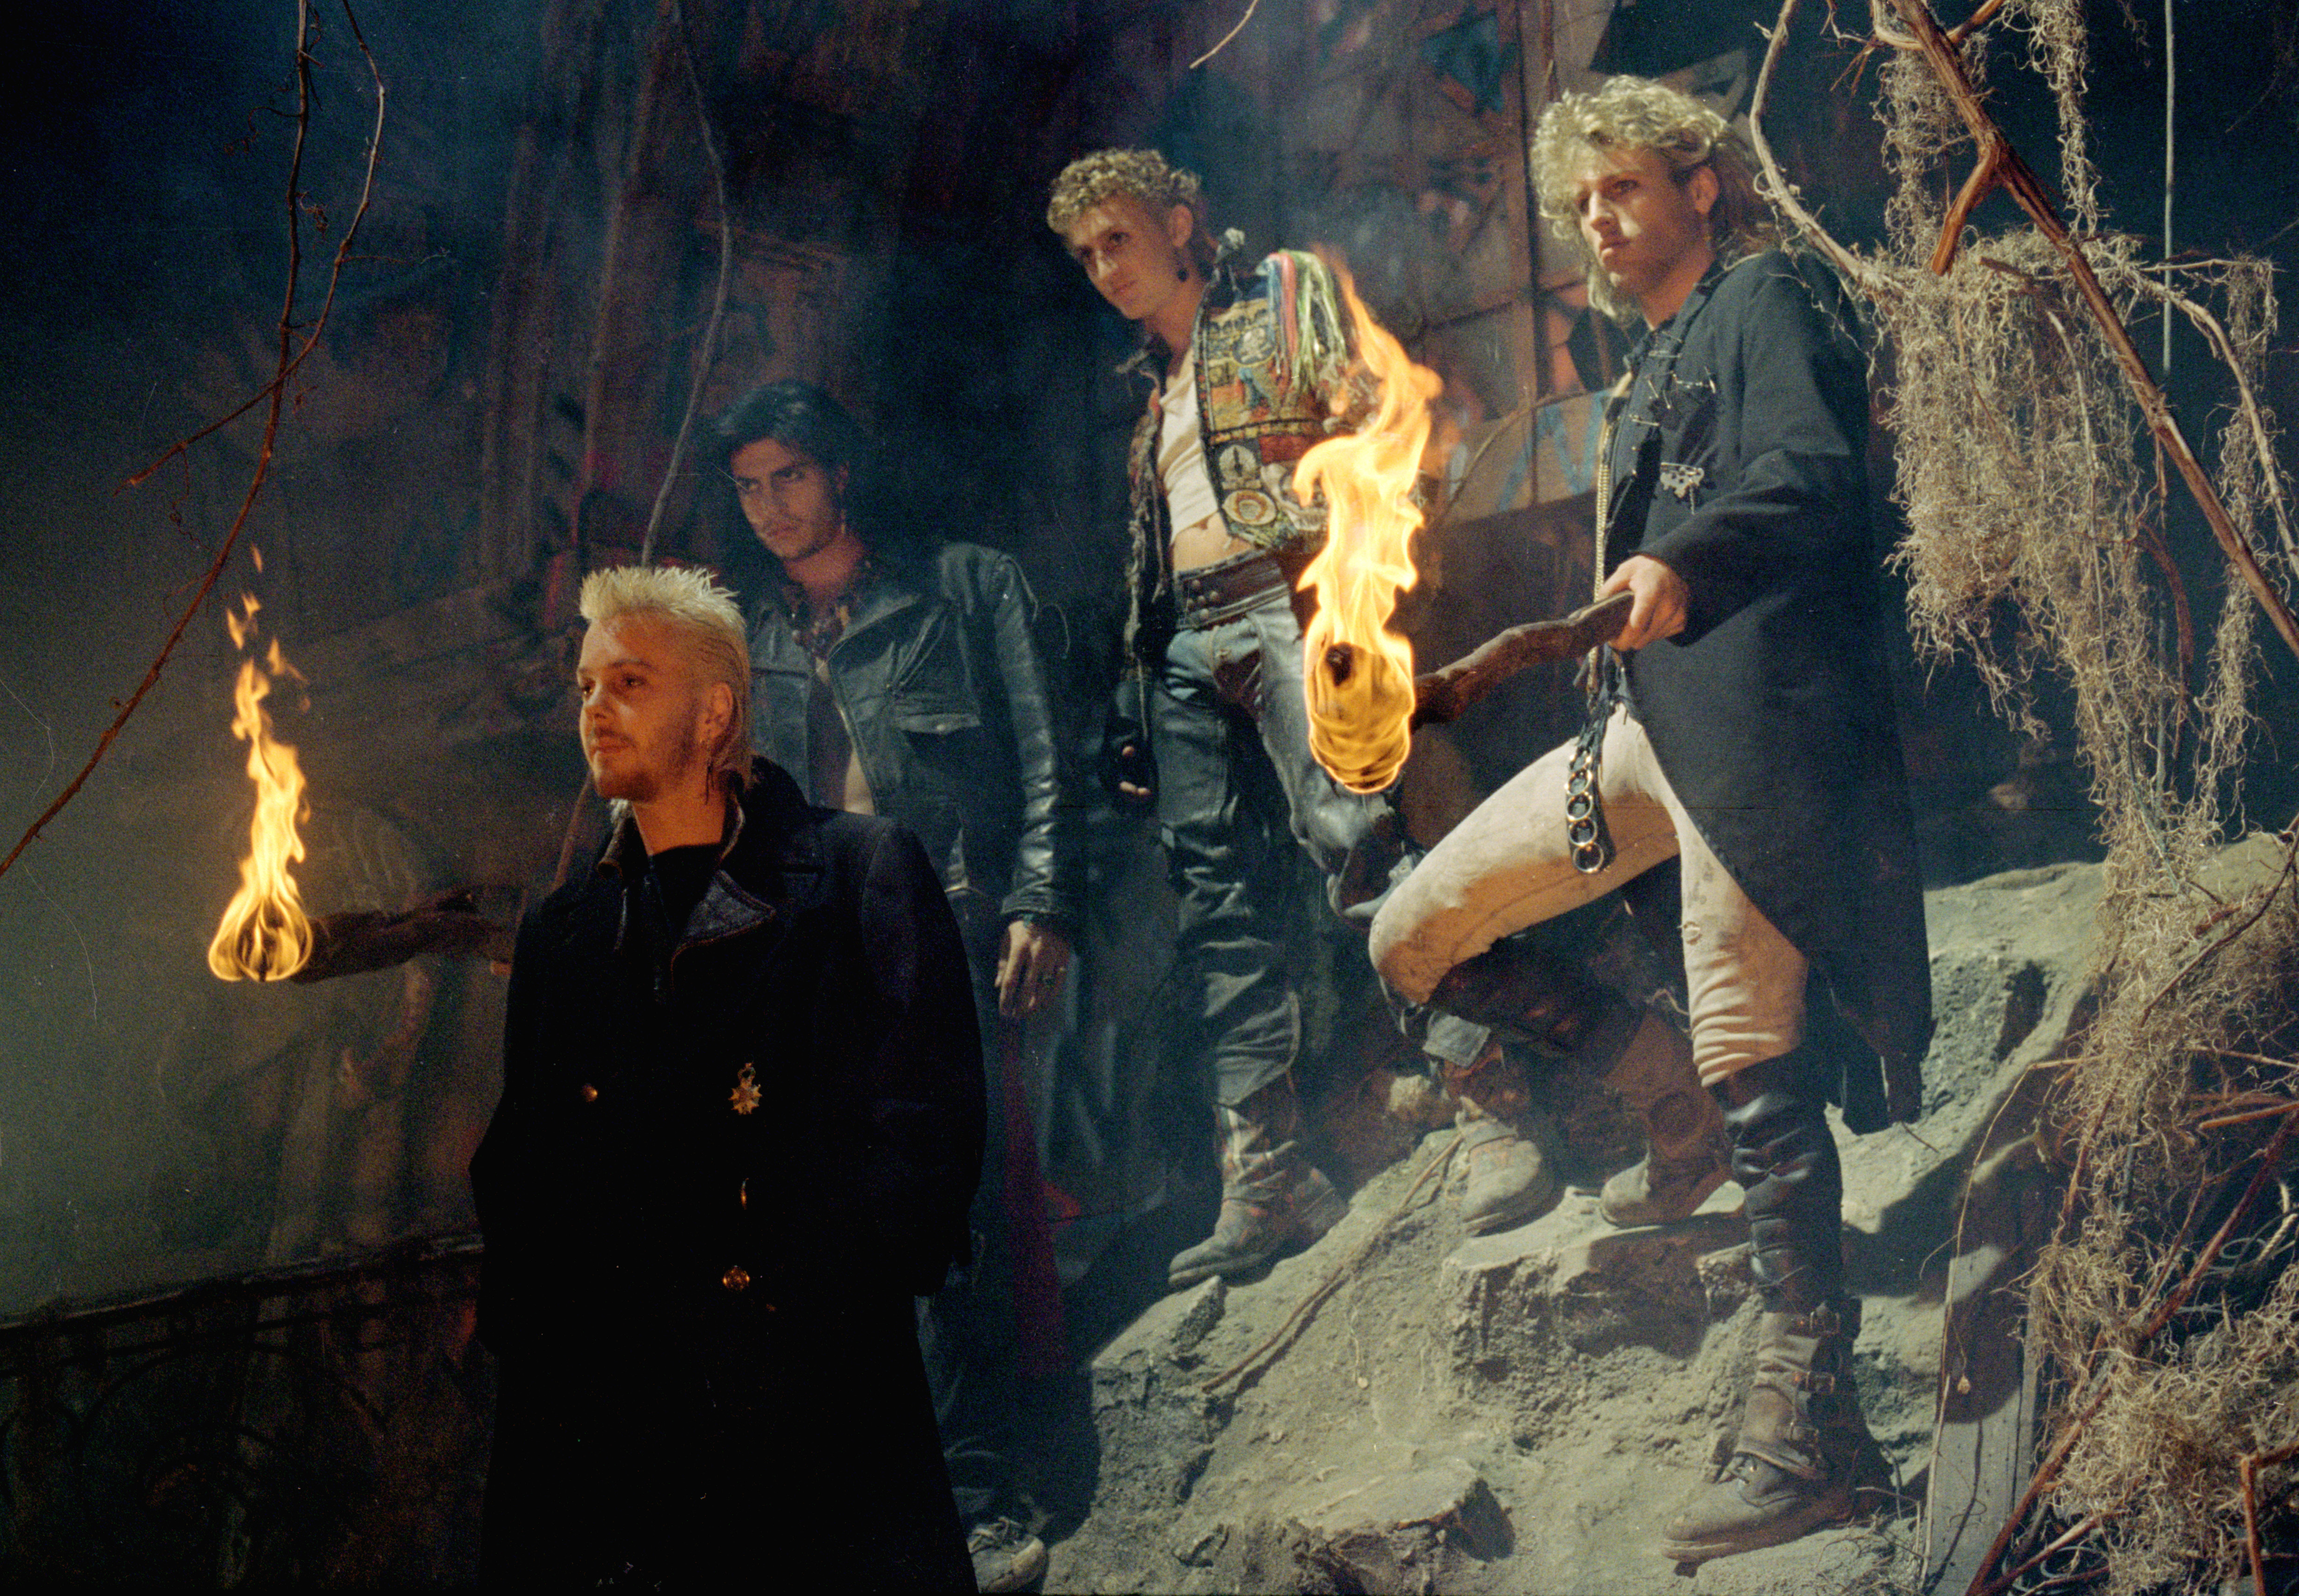 Eighties classic movie The Lost Boys is being rebooted as a TV series